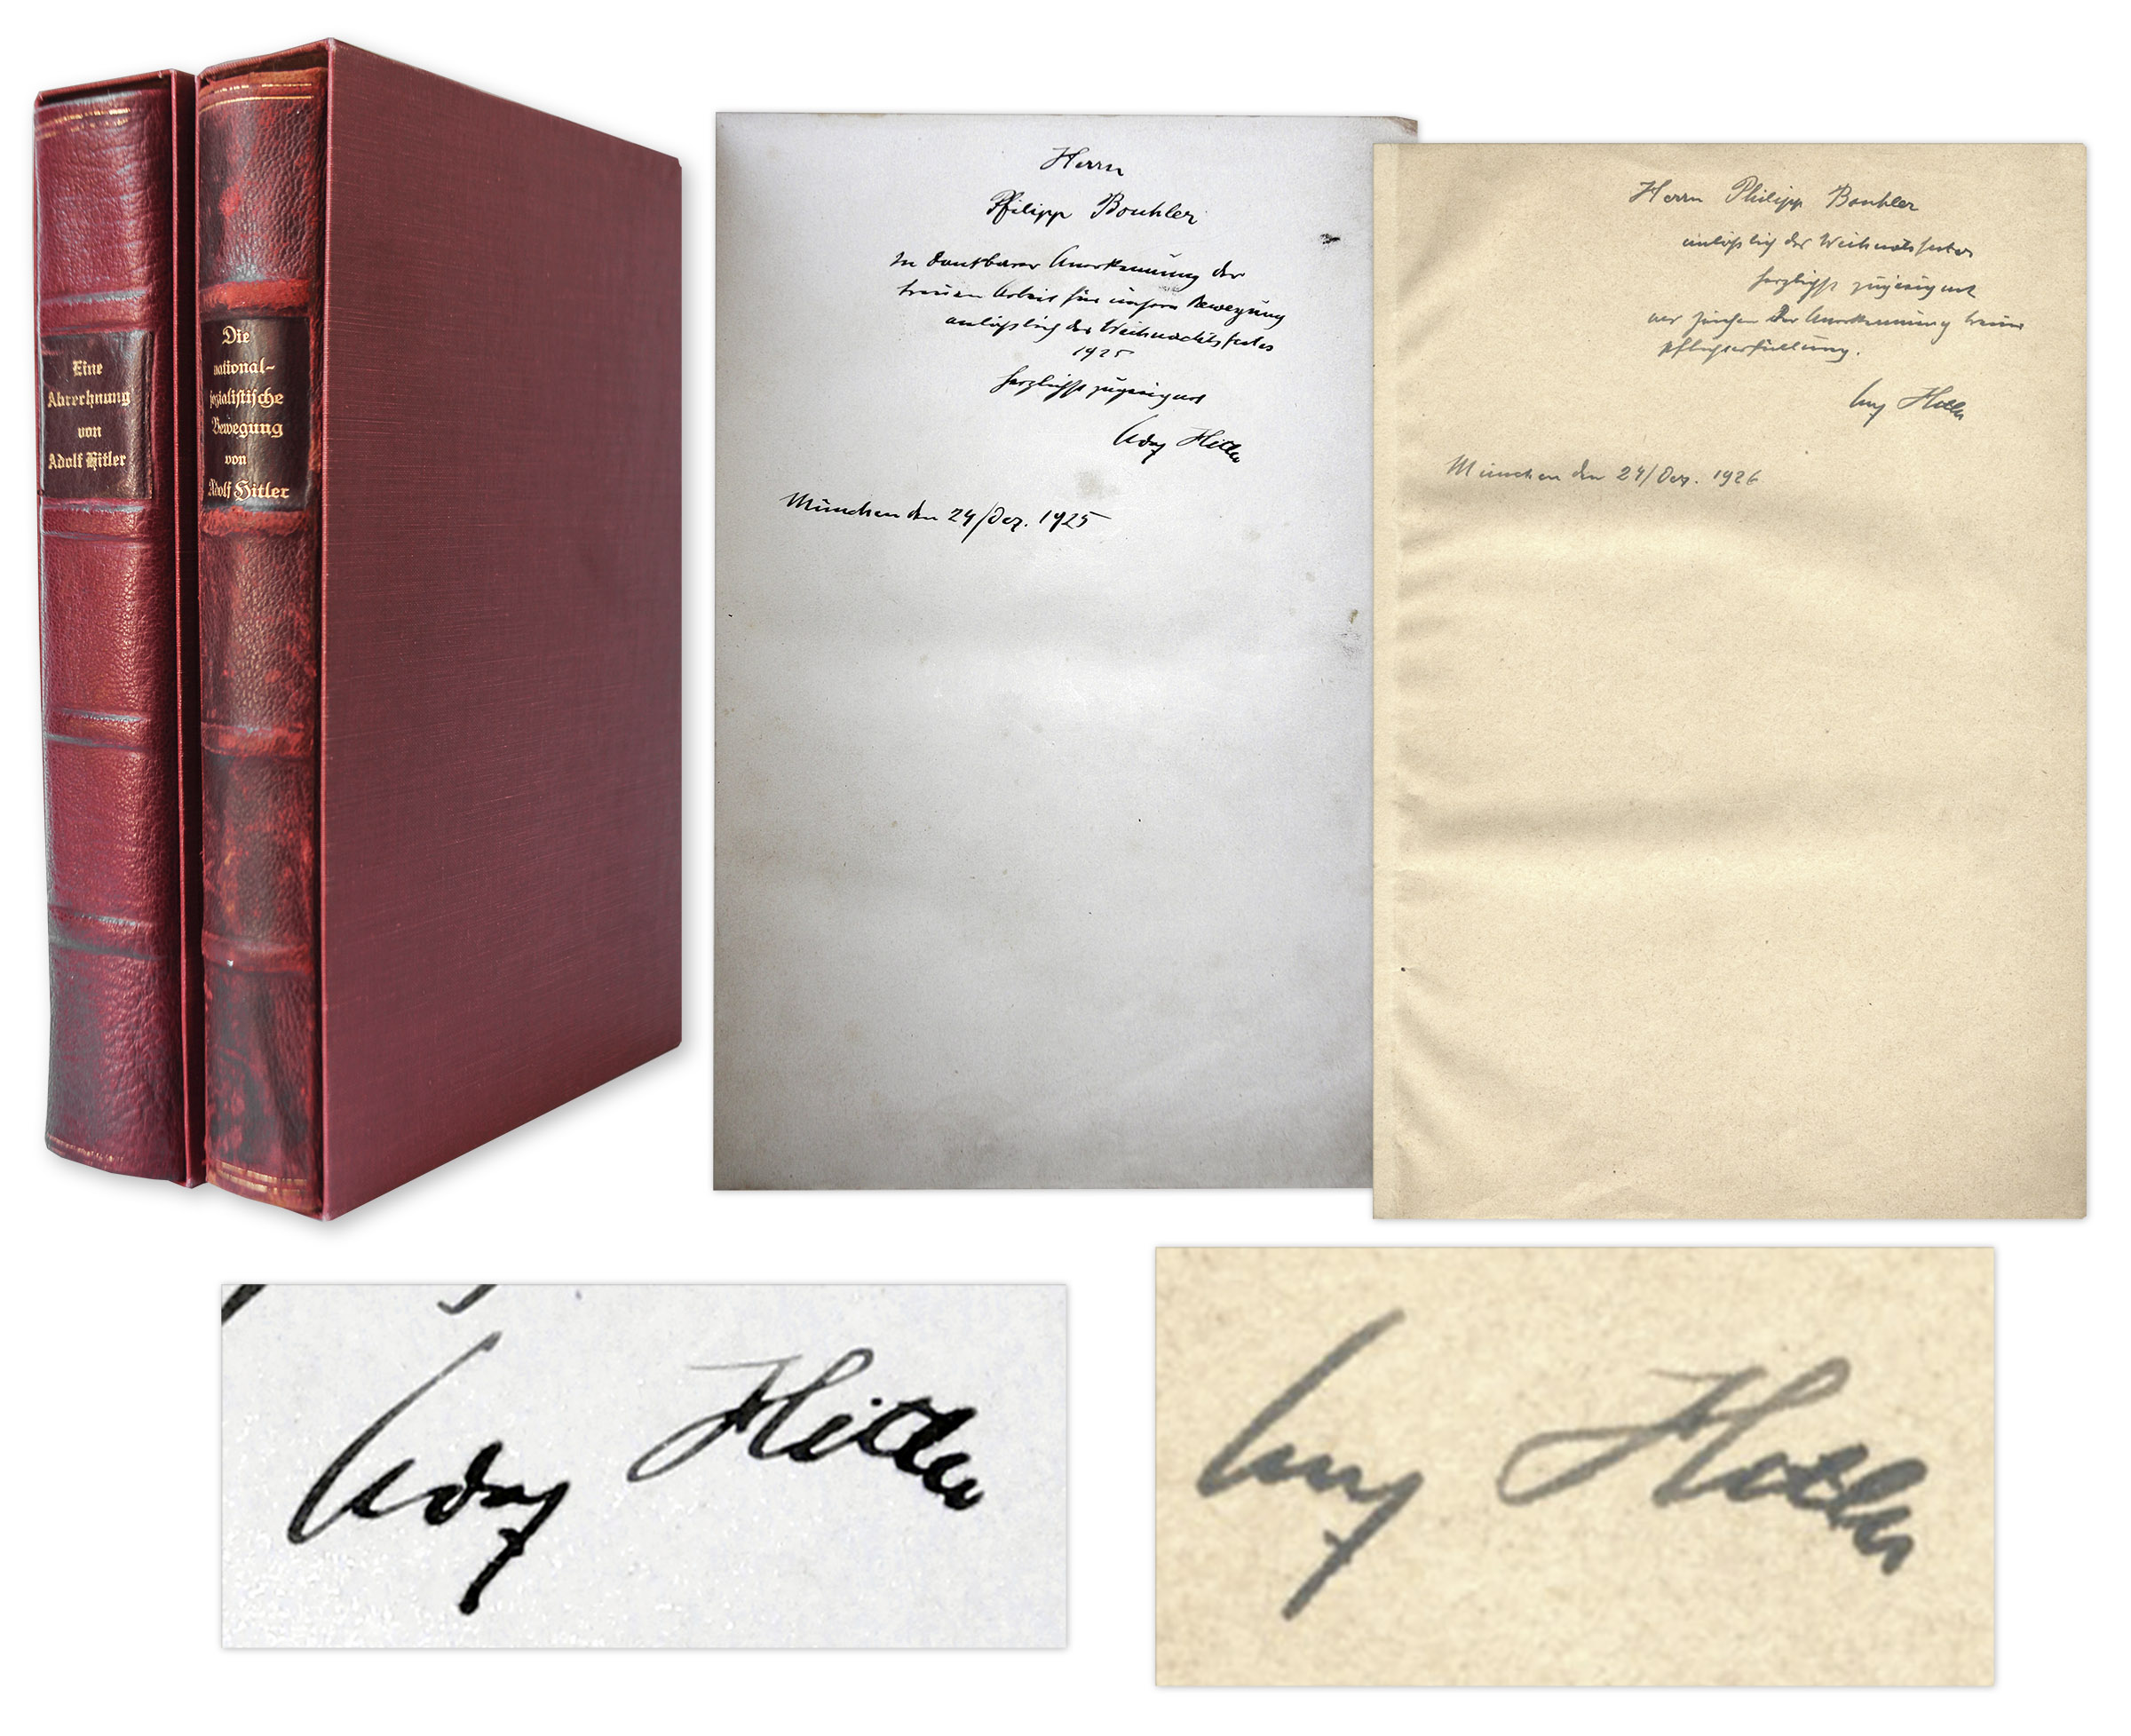 Adolf Hitler Autograph Adolf Hitler Signed First Editions of ''Mein Kampf'' -- Both Volumes Signed by Hitler in 1925 and 1926, Inscribed to Philipp Bouhler, Nazi #12 -- ''...your loyal work for our movement...''